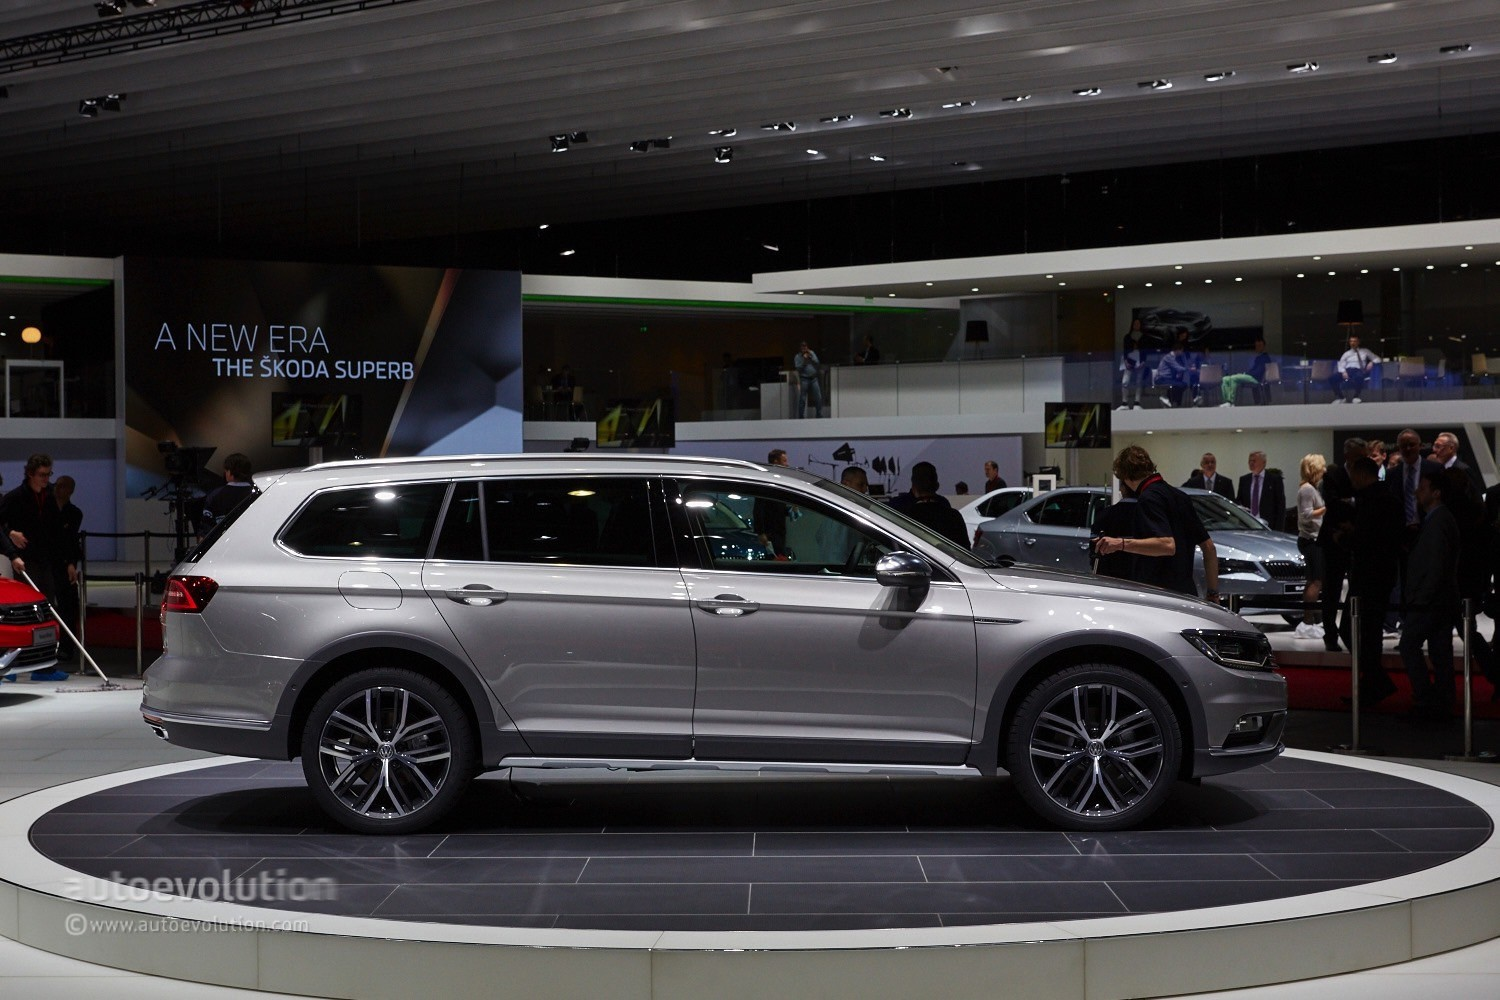 2015 Volkswagen Passat Alltrack Makes a First Appearance in the Metal at Geneva - autoevolution